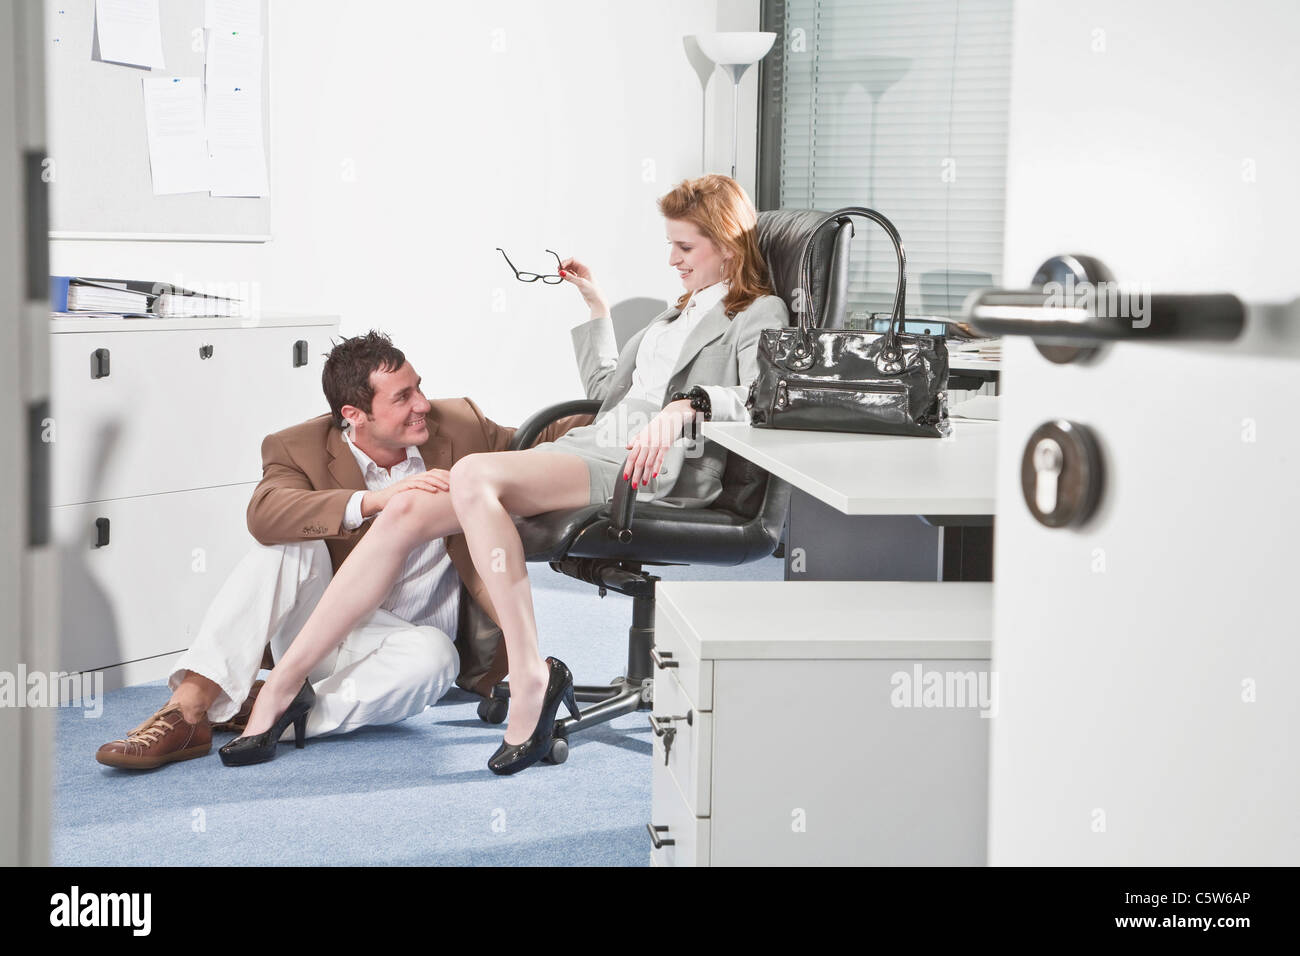 Germany, Business people in office, Business man touching woman's knee - Stock Image